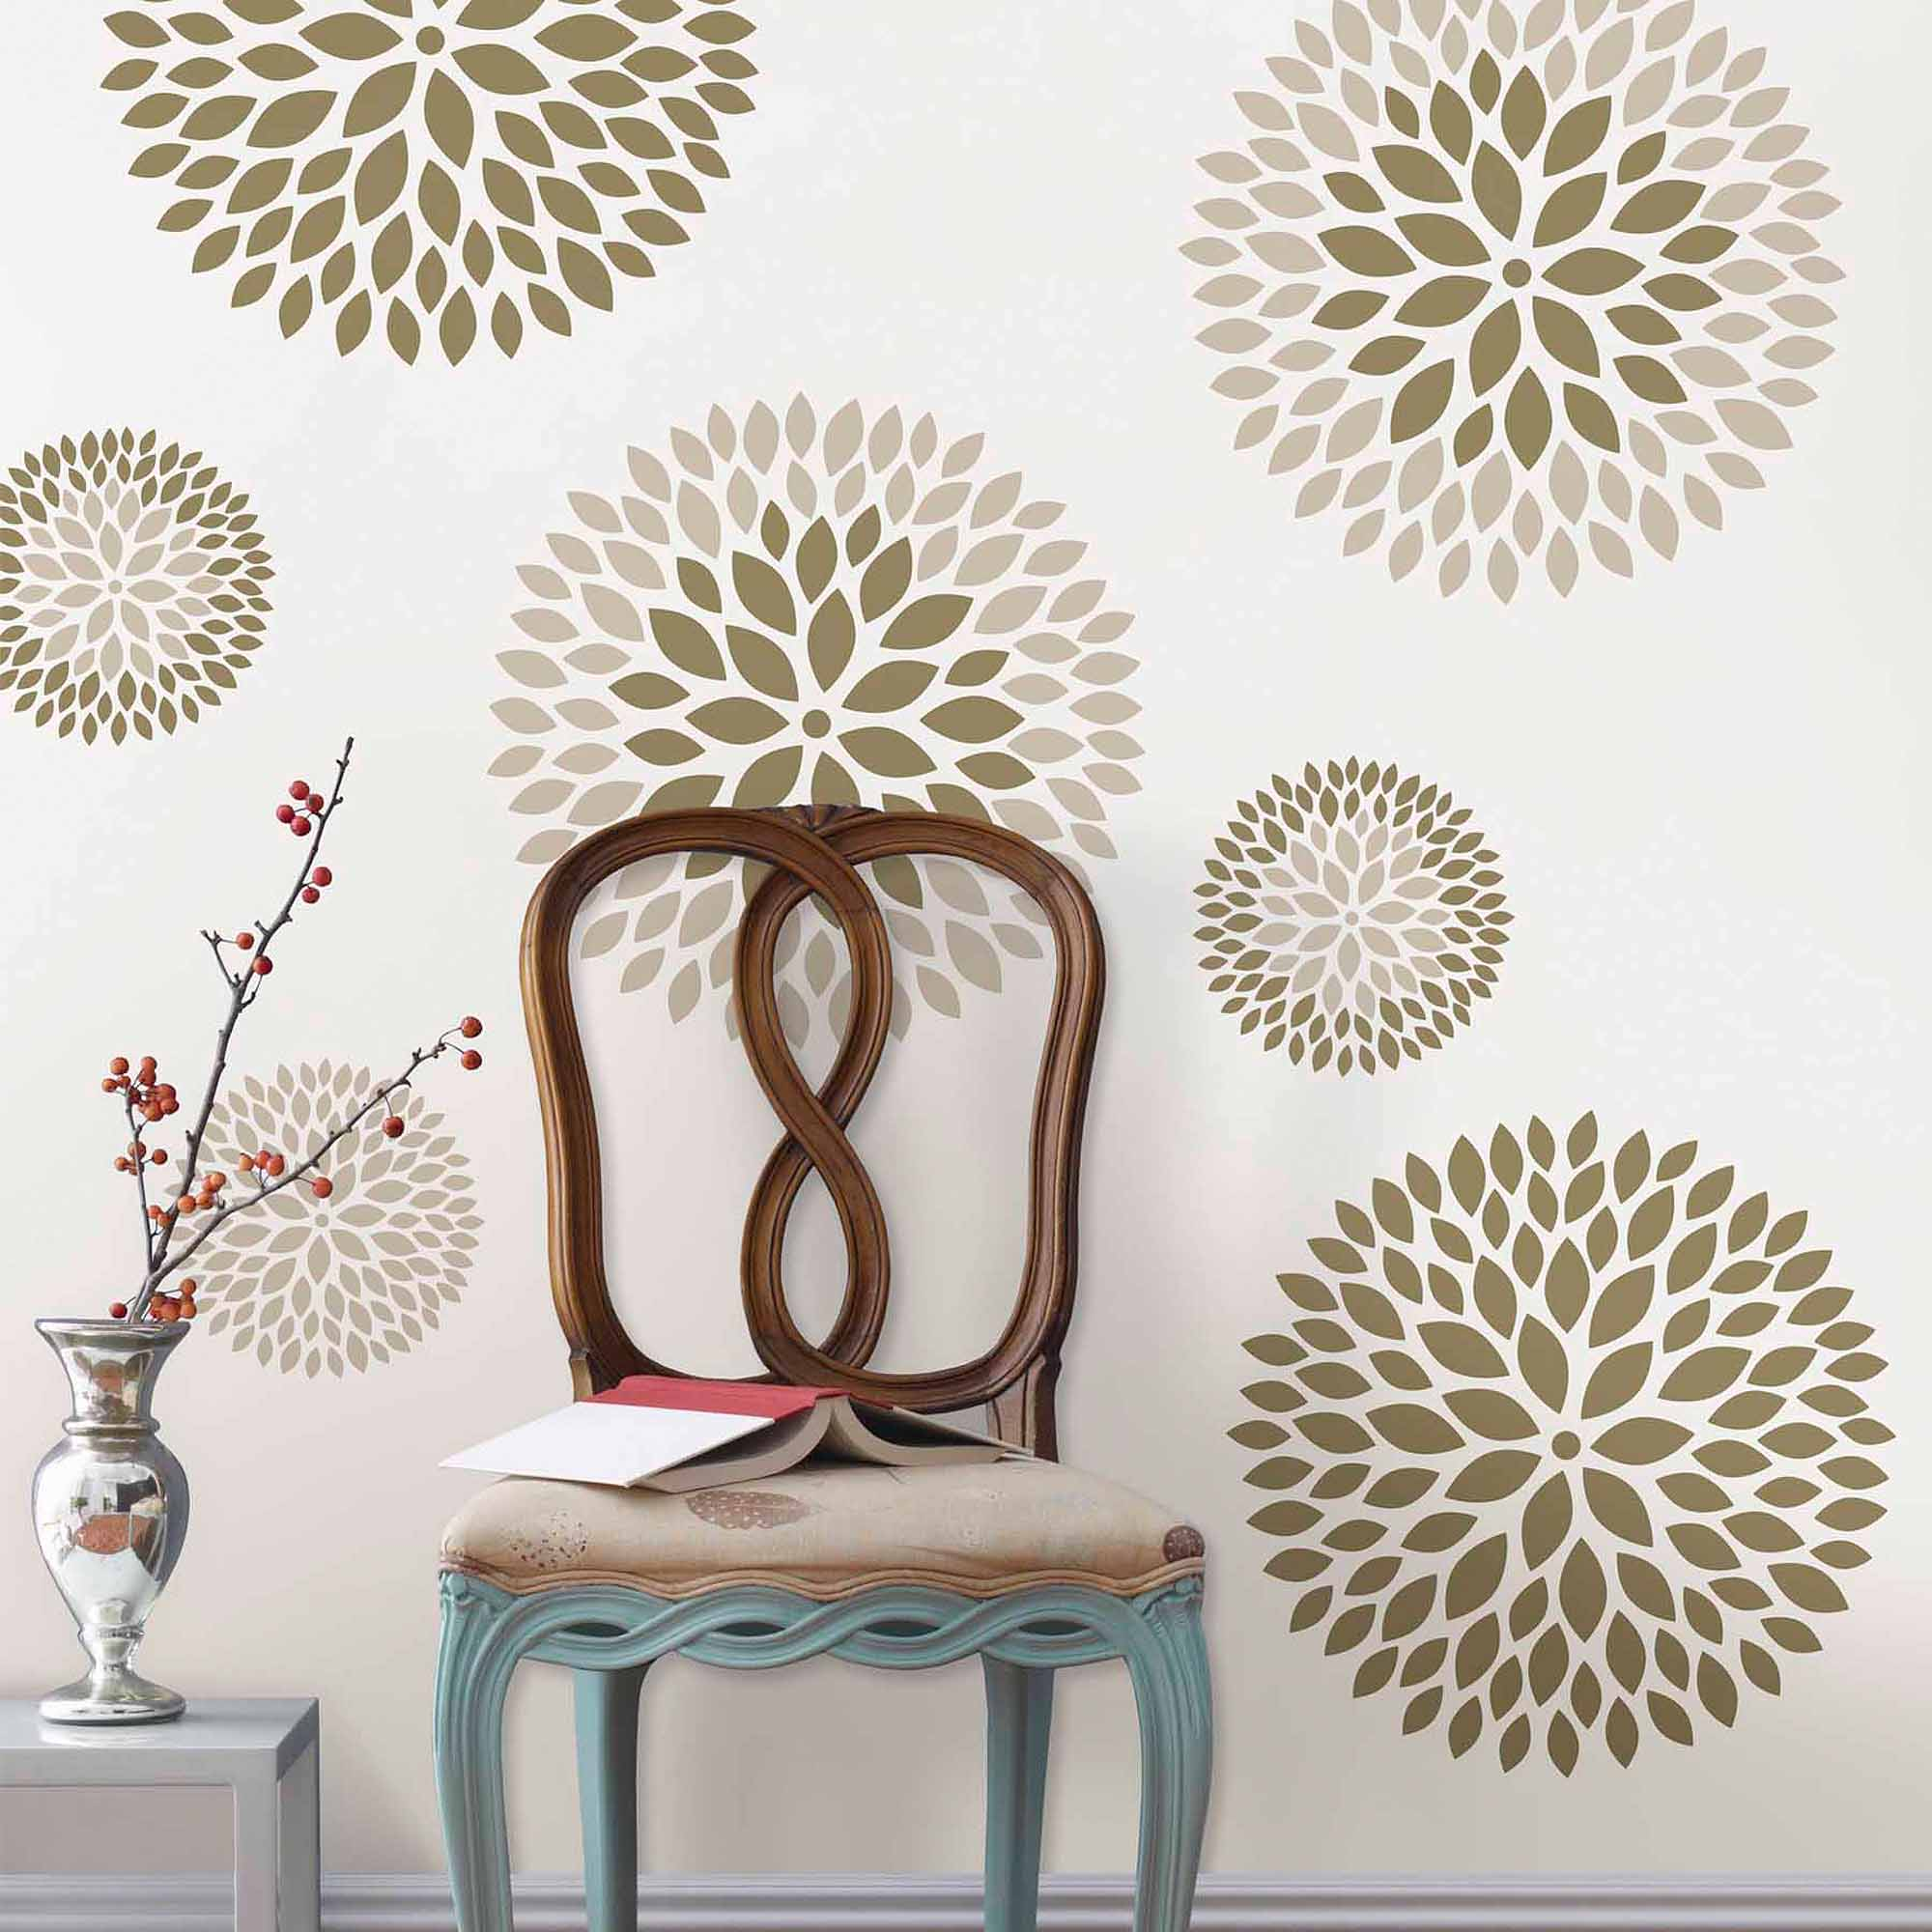 WallPops Chrysanthemum Wall Art Decals Kit